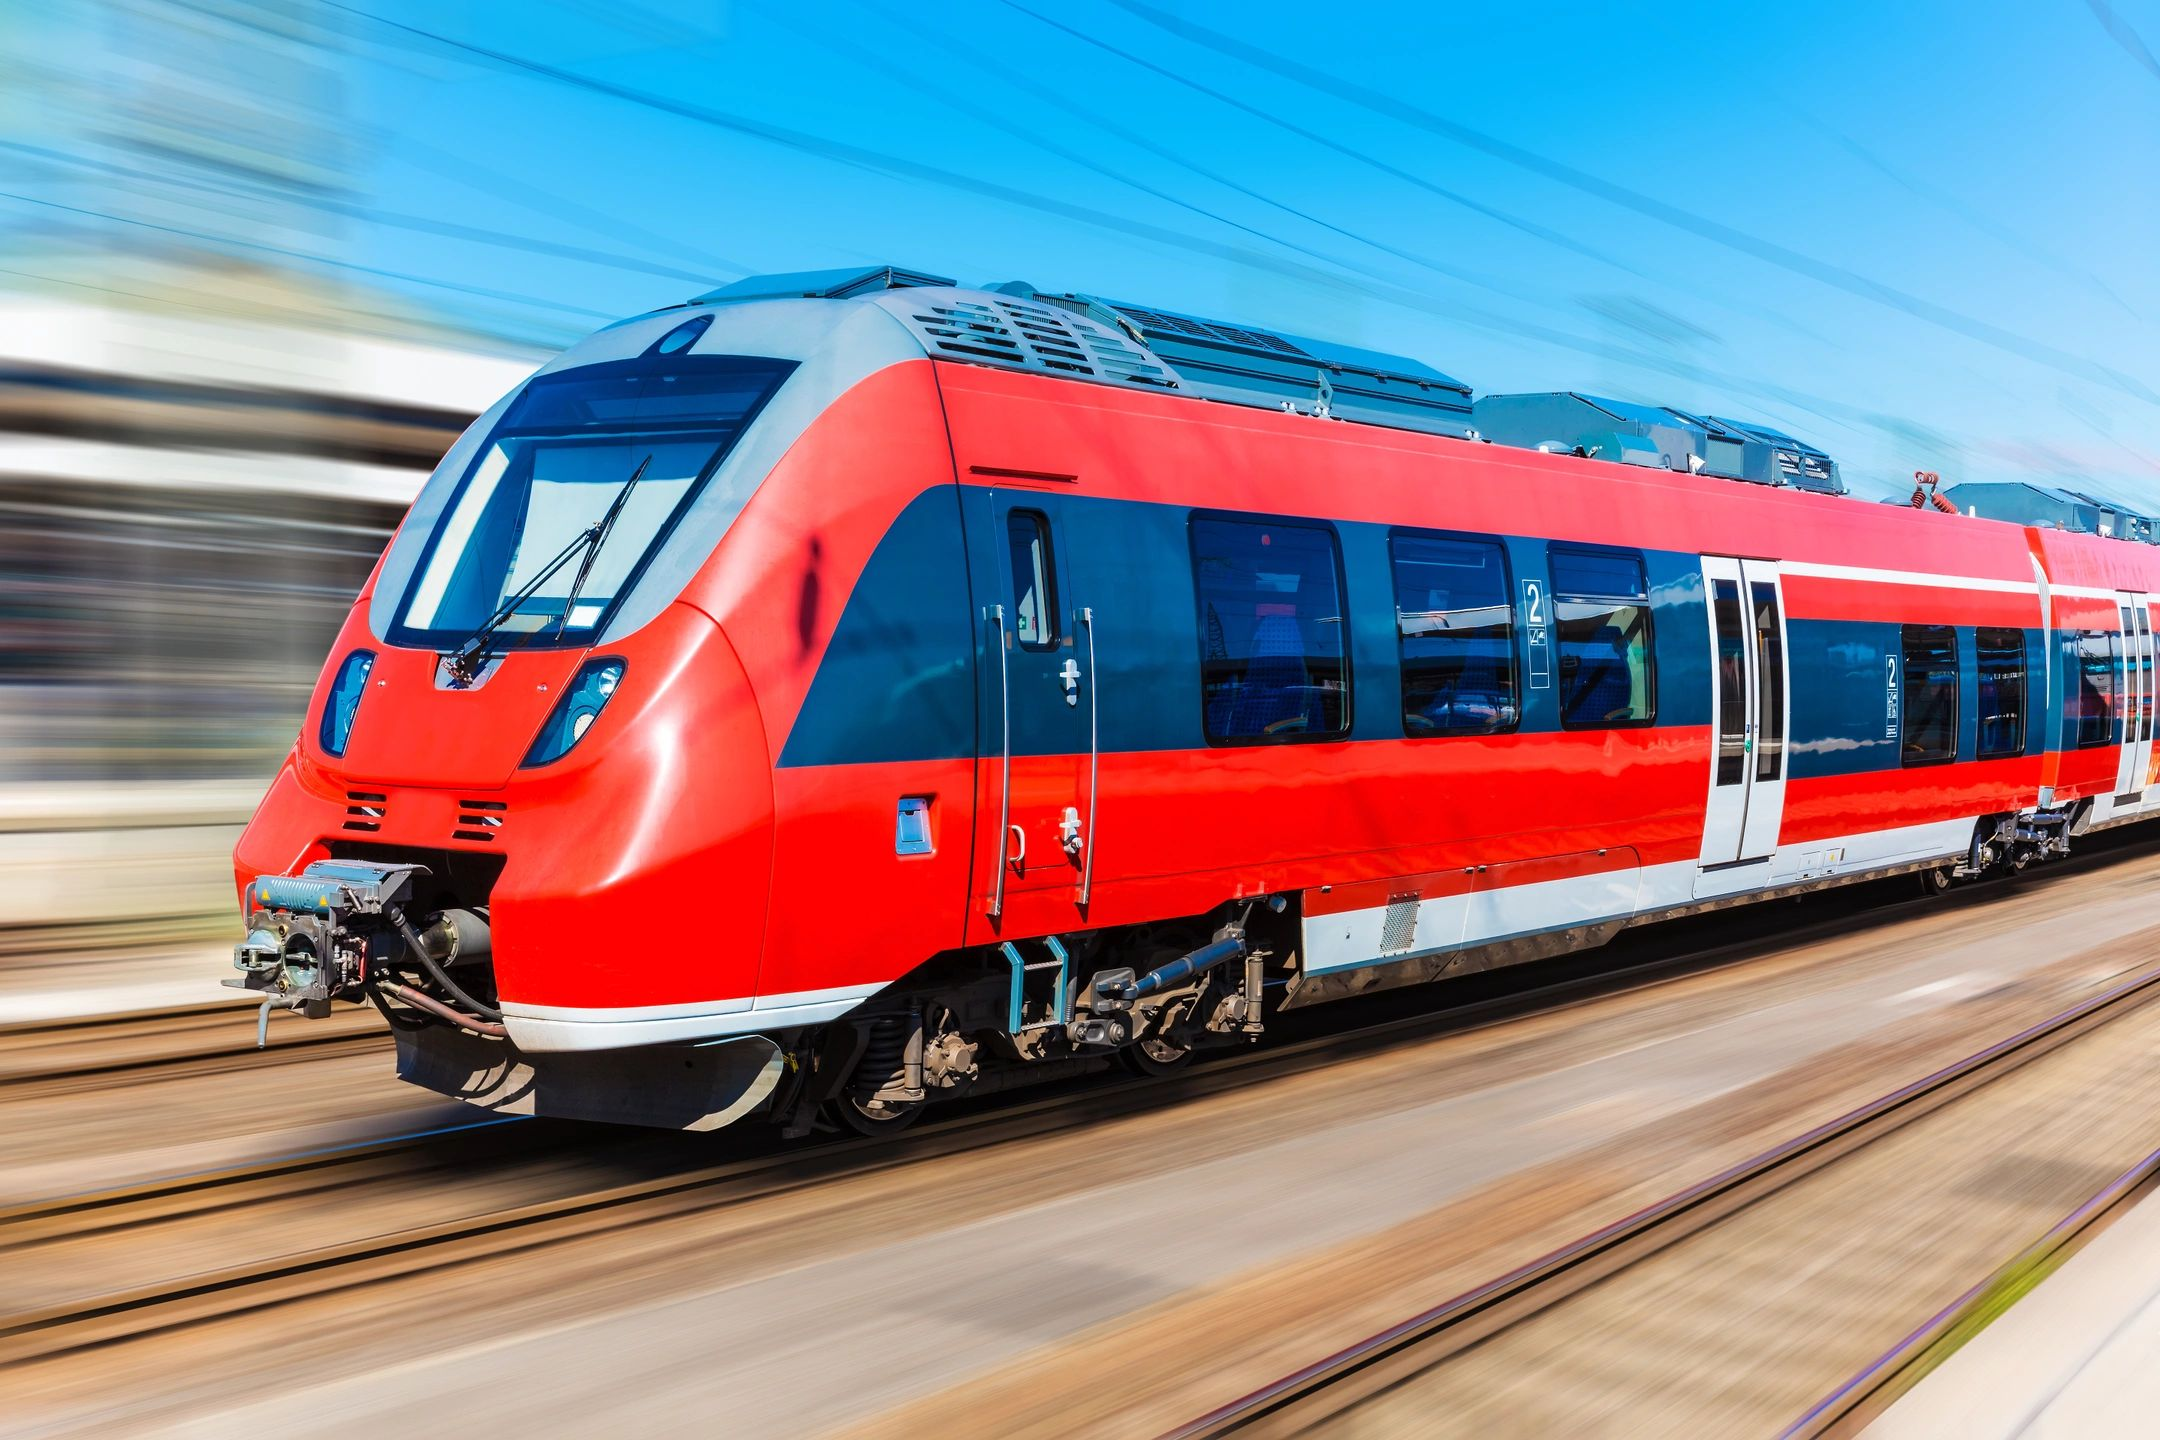 Trains: A Safer Way to Travel